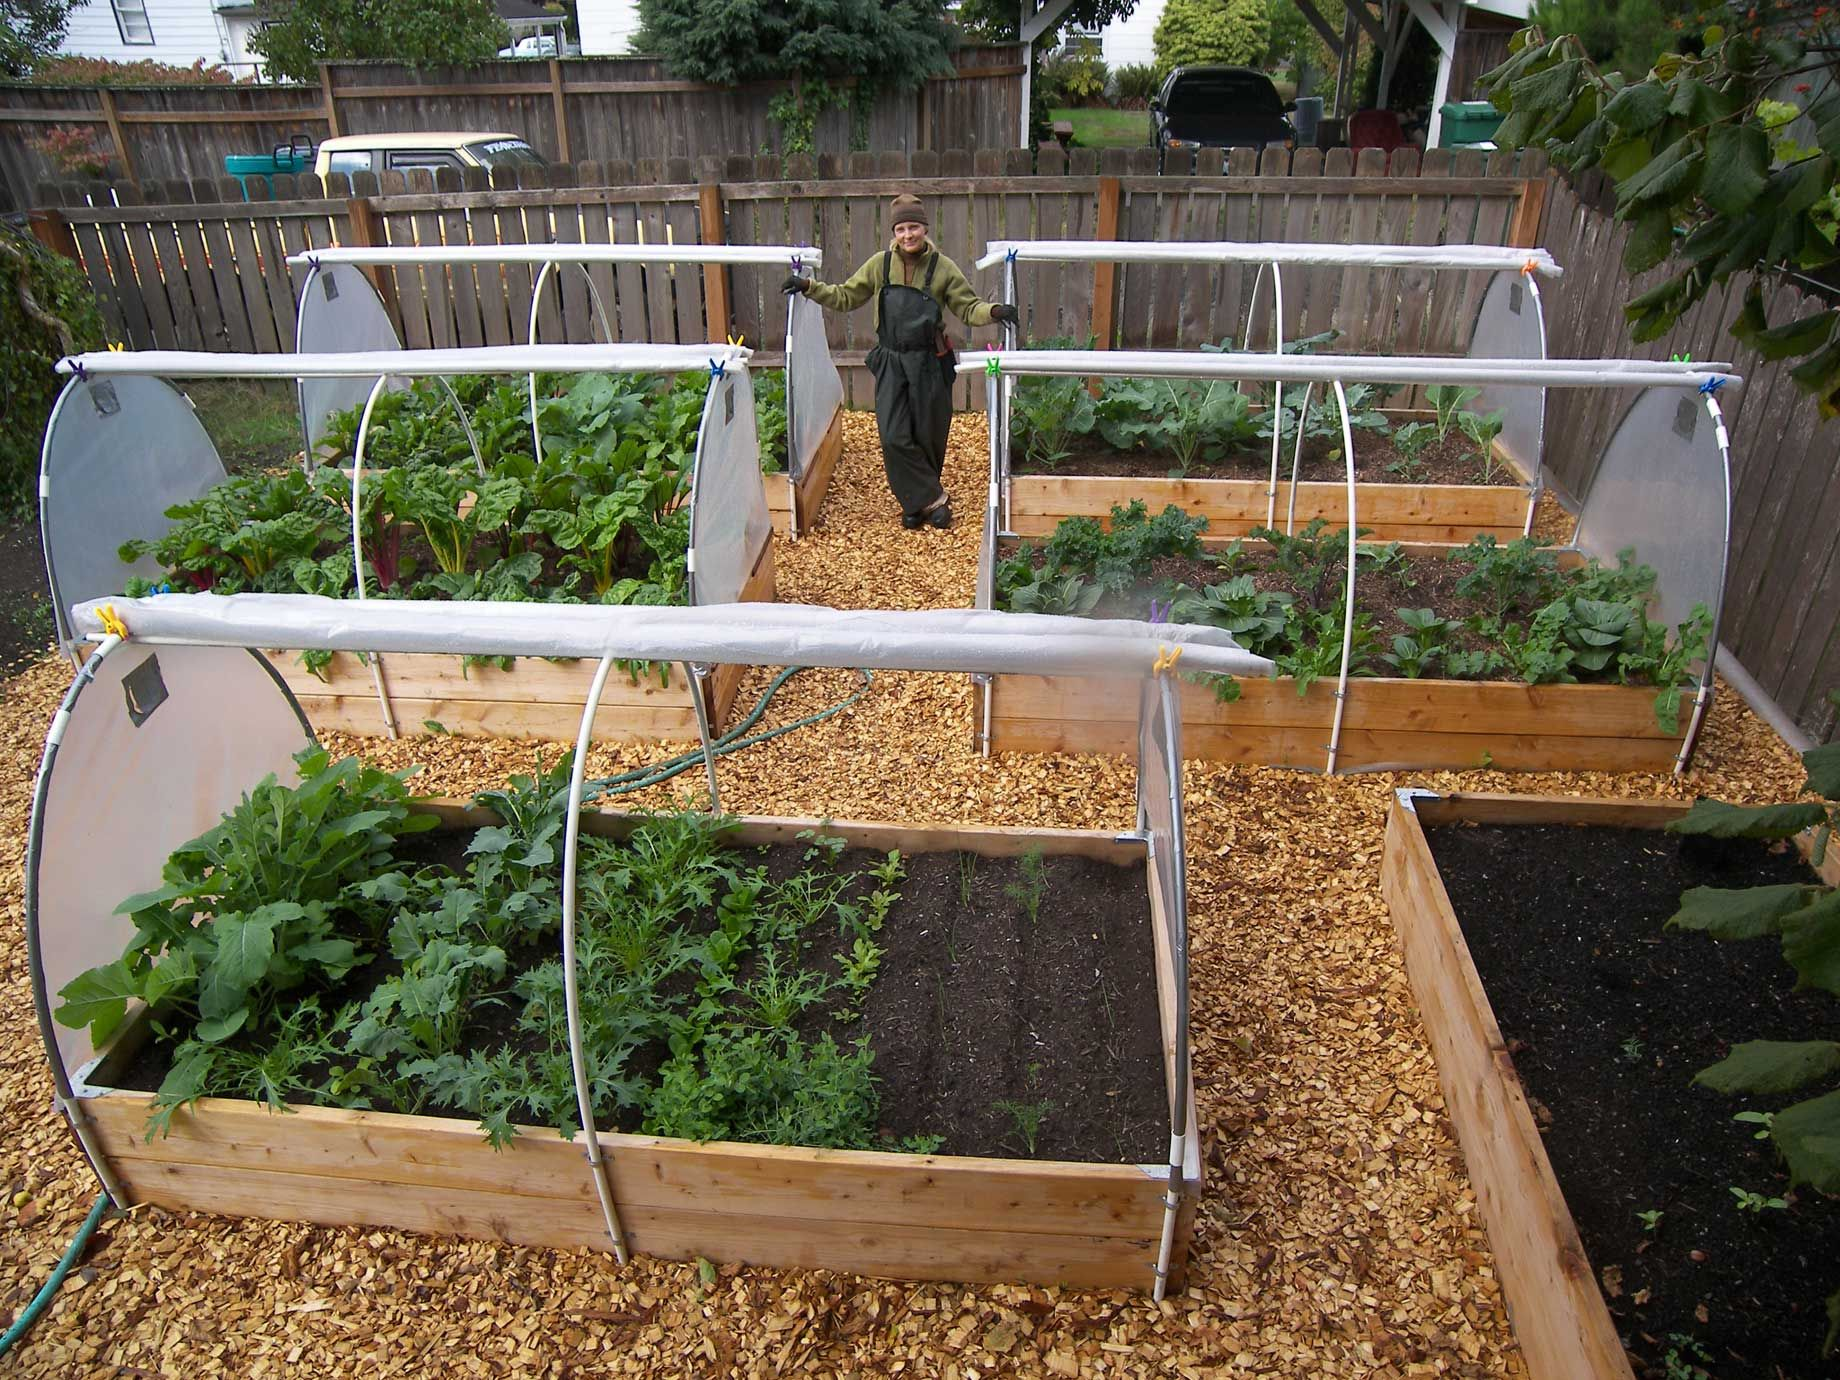 Winter Garden   Raised Beds With Hoop Houses I Wonder How Much This Could  Extendu2026